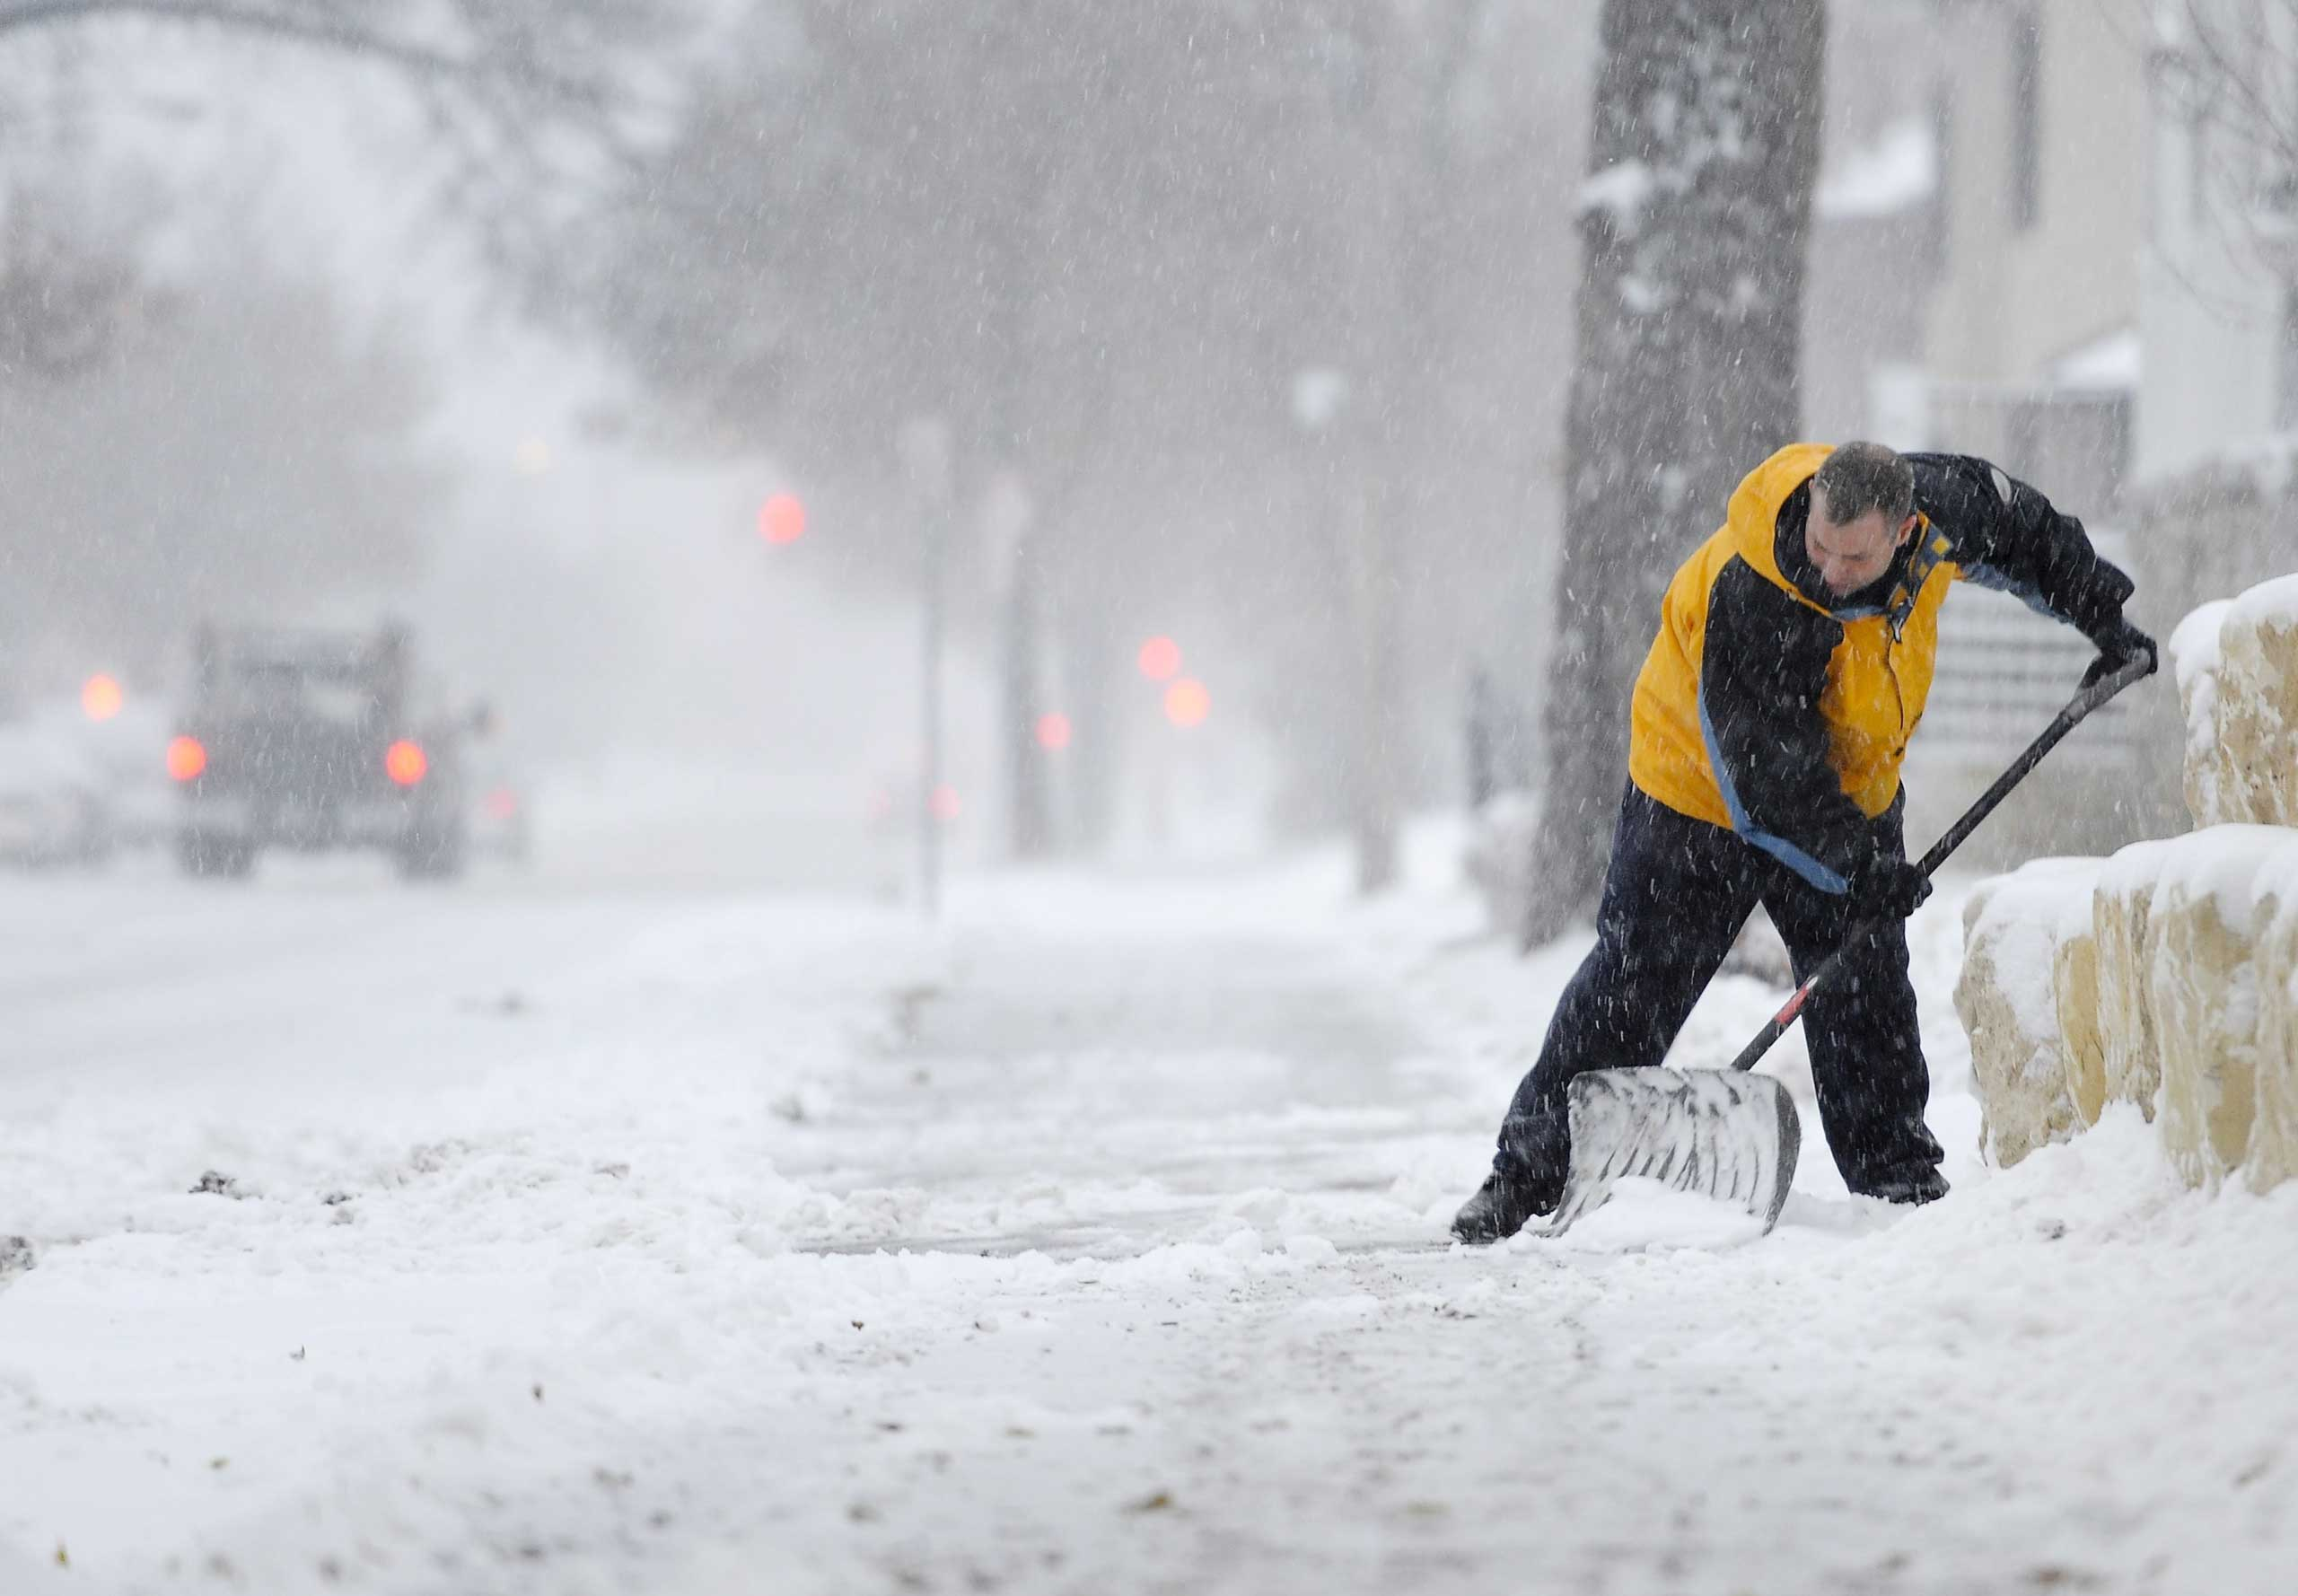 Mike Schultz of Minneapolis clears a sidewalk as he tries to keep up with the snow during the season's first snowstorm in Minneapolis, on Nov. 10, 2014.